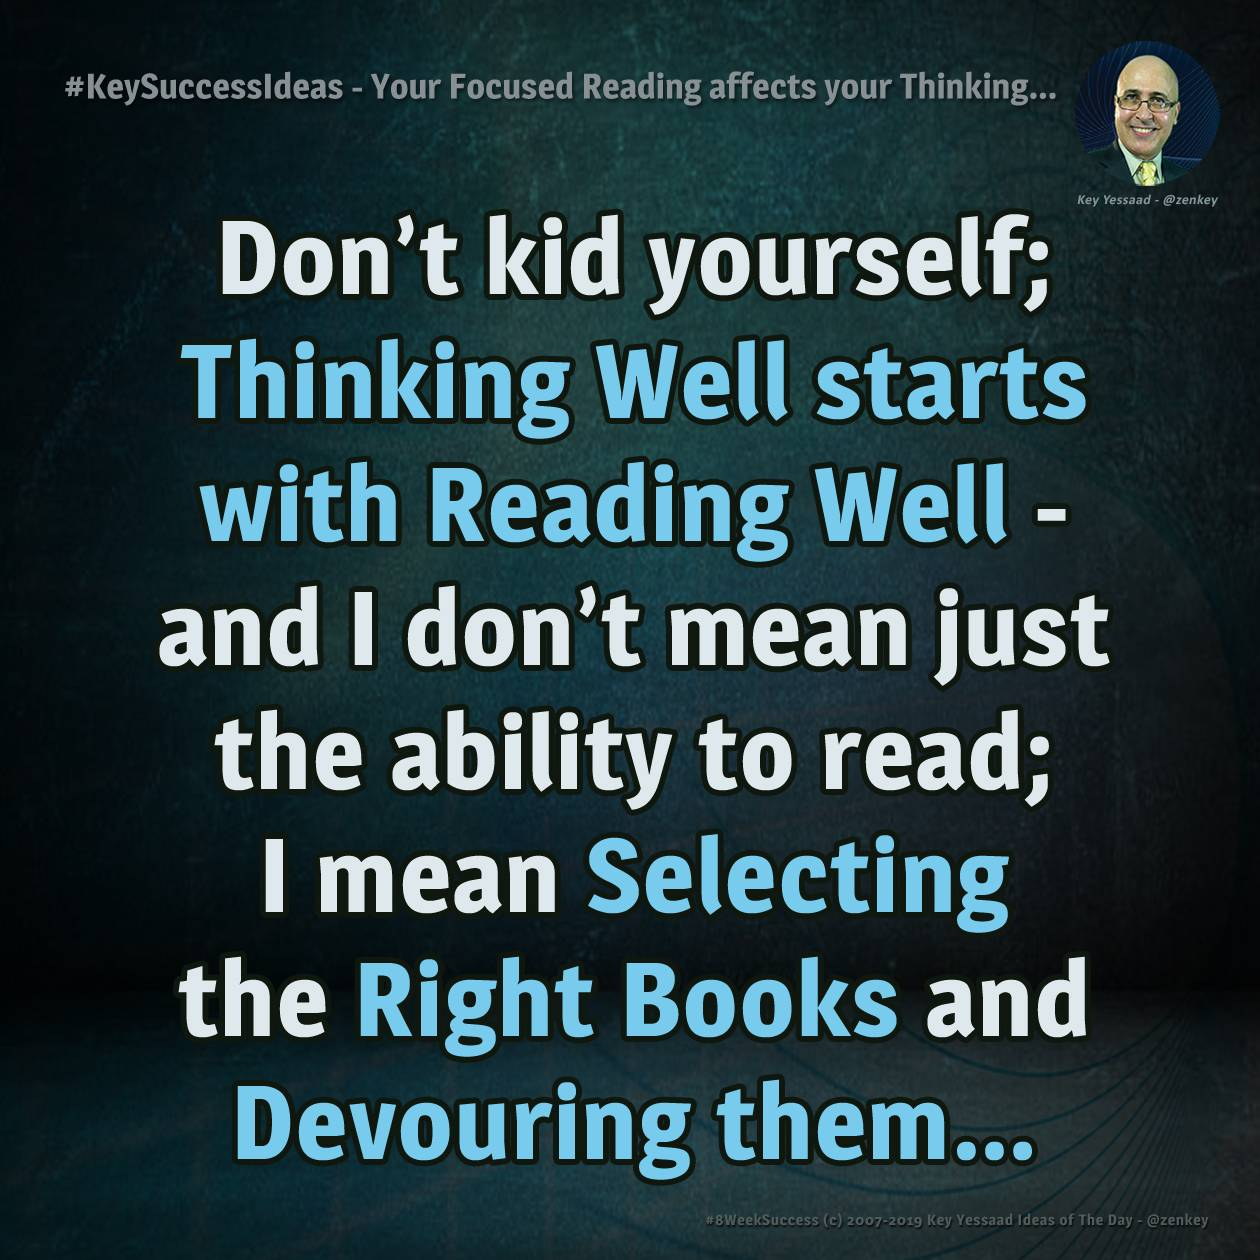 #KeySuccessIdeas - Your Focused Reading affects your Thinking...